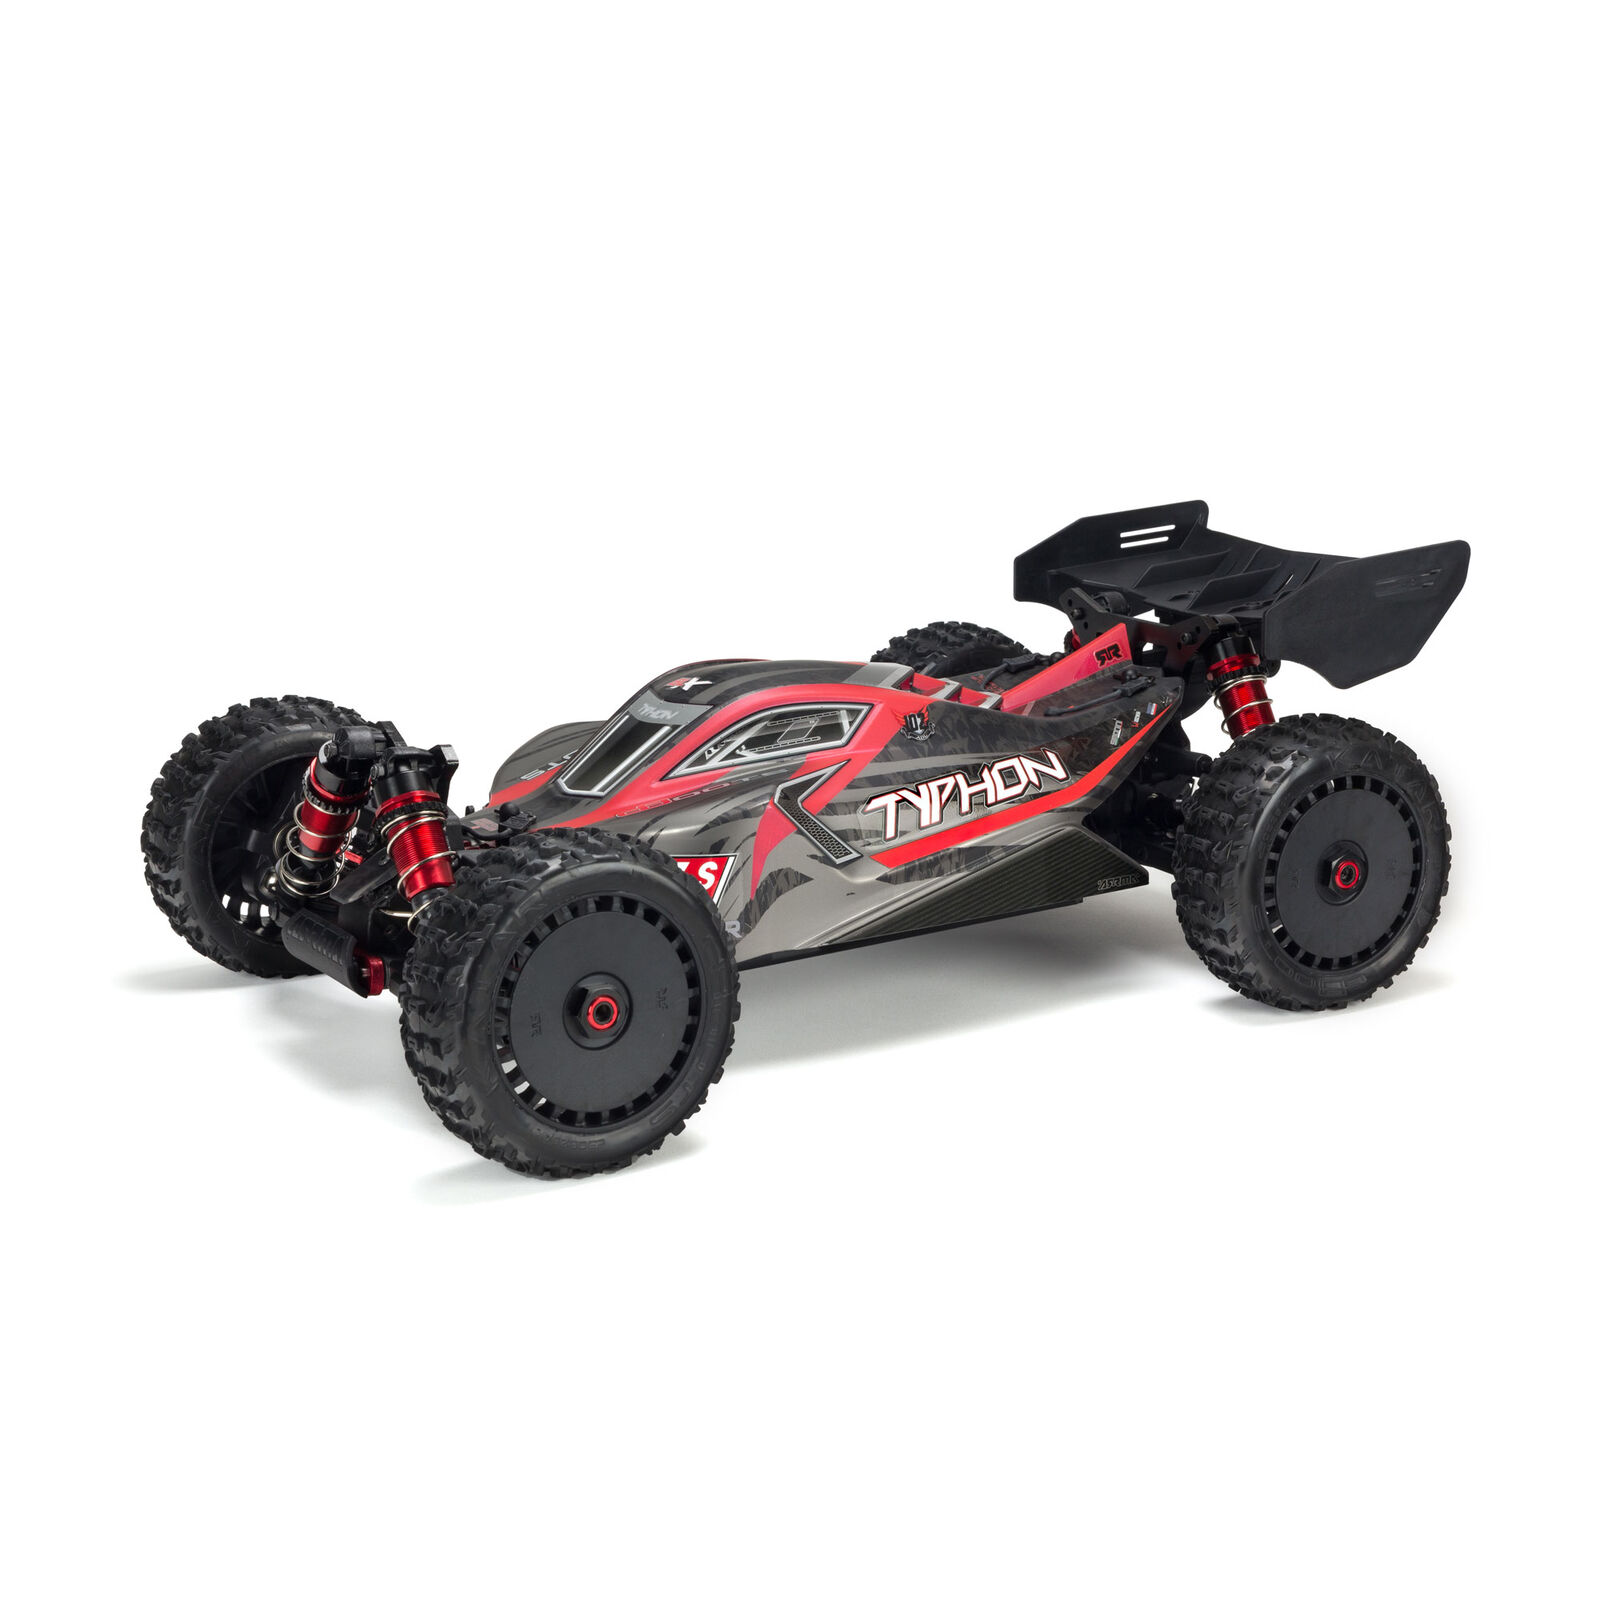 Body Painted with Decals TYPHON 6S, Black/Red